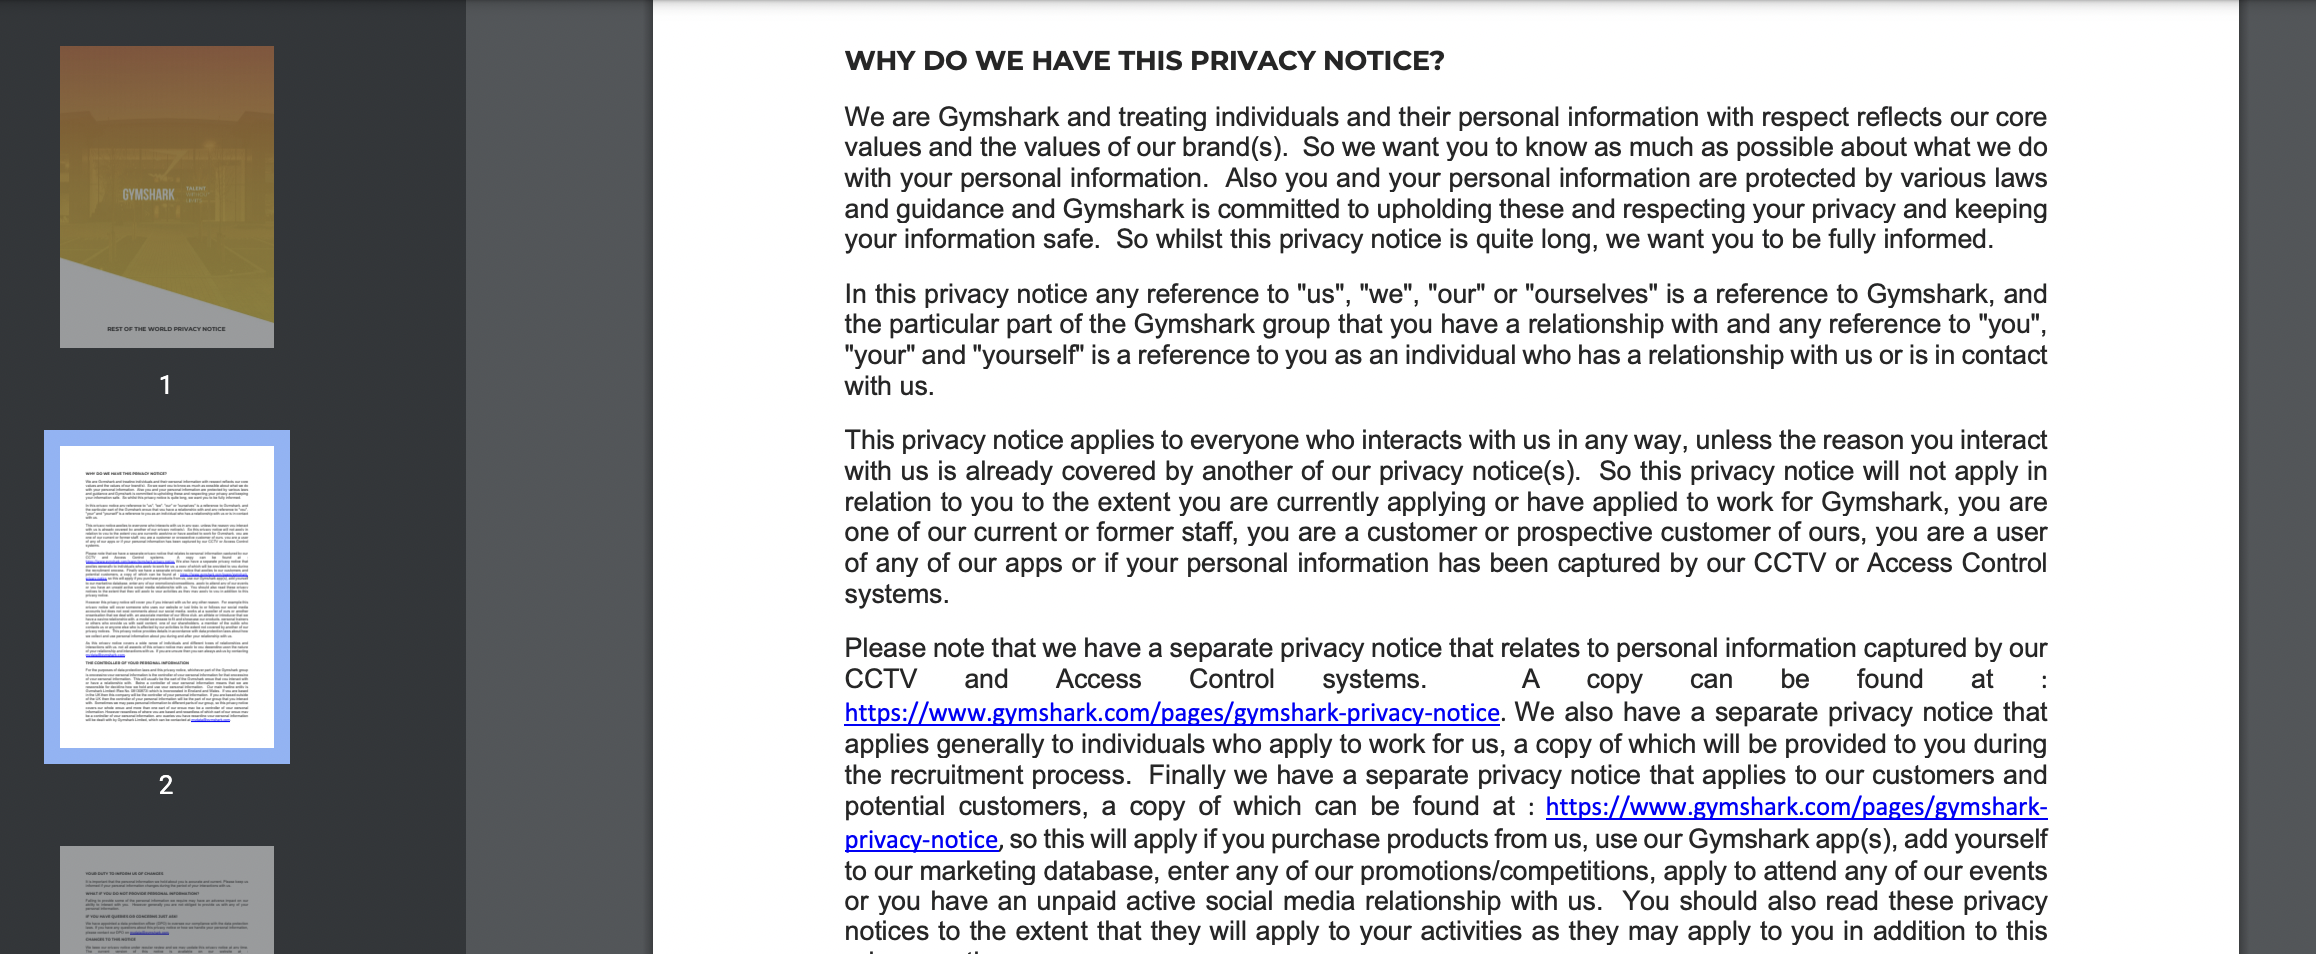 GymShark Privacy Notice